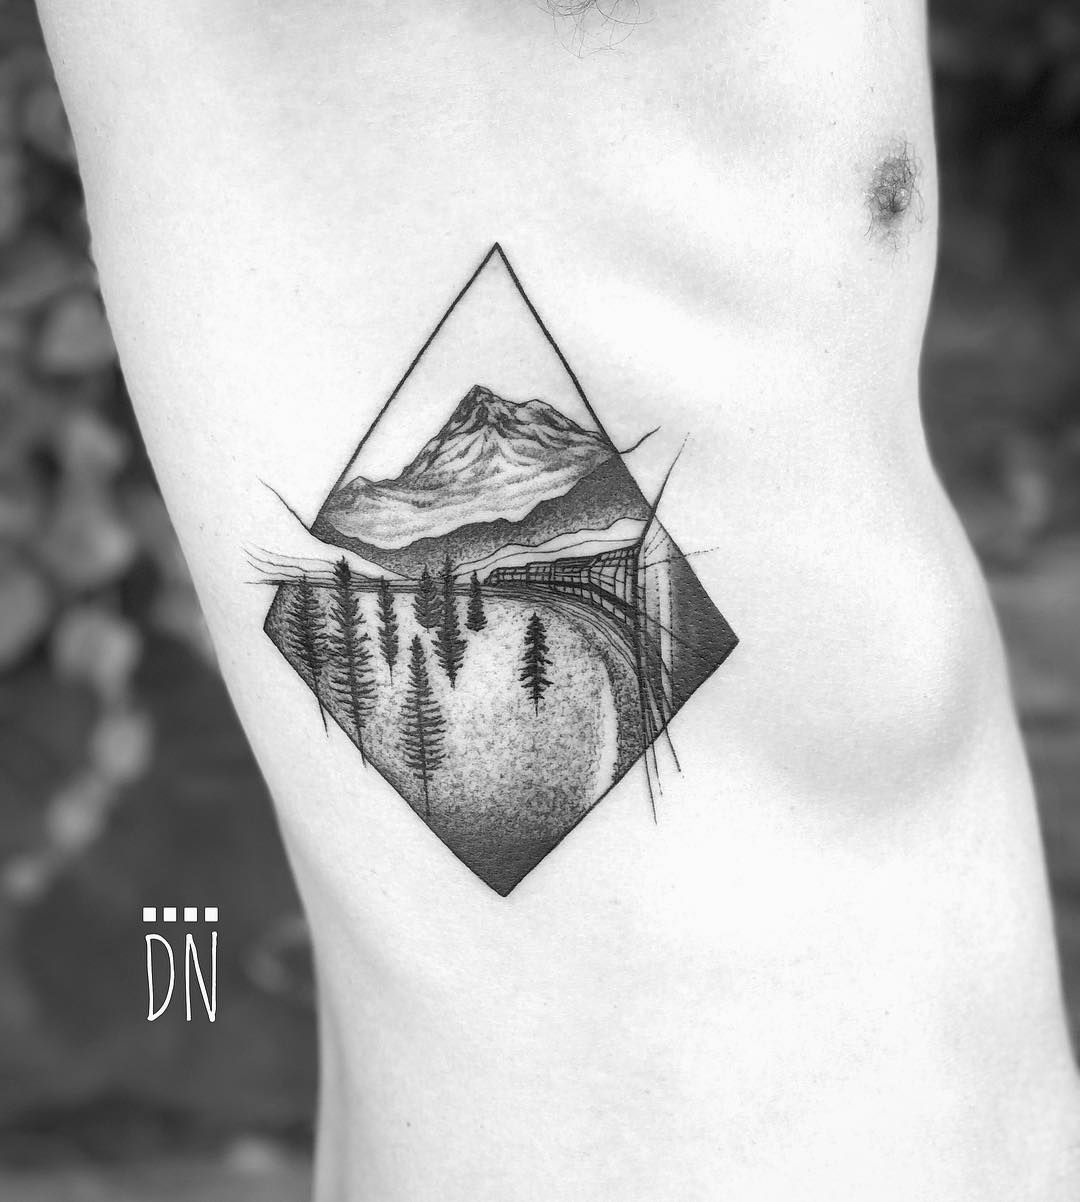 6cdad4ee0 This style for mountains as part of LOTR sleeve tattoo || Insta @dinonemec  Alaska